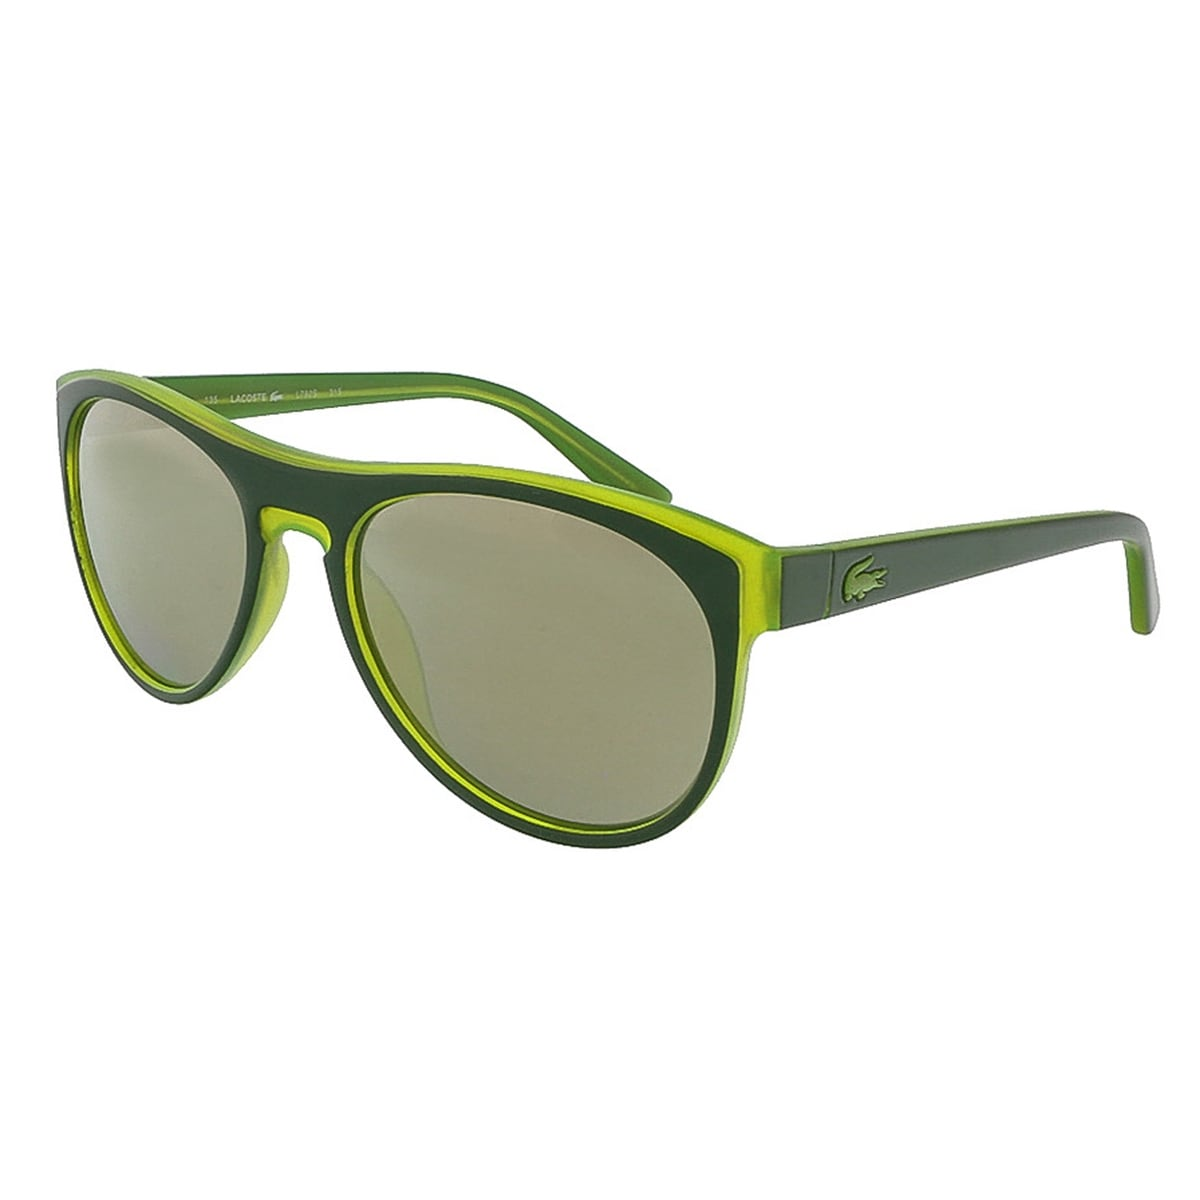 d170dcc5a04c Lacoste Sunglasses | Shop our Best Clothing & Shoes Deals Online at  Overstock